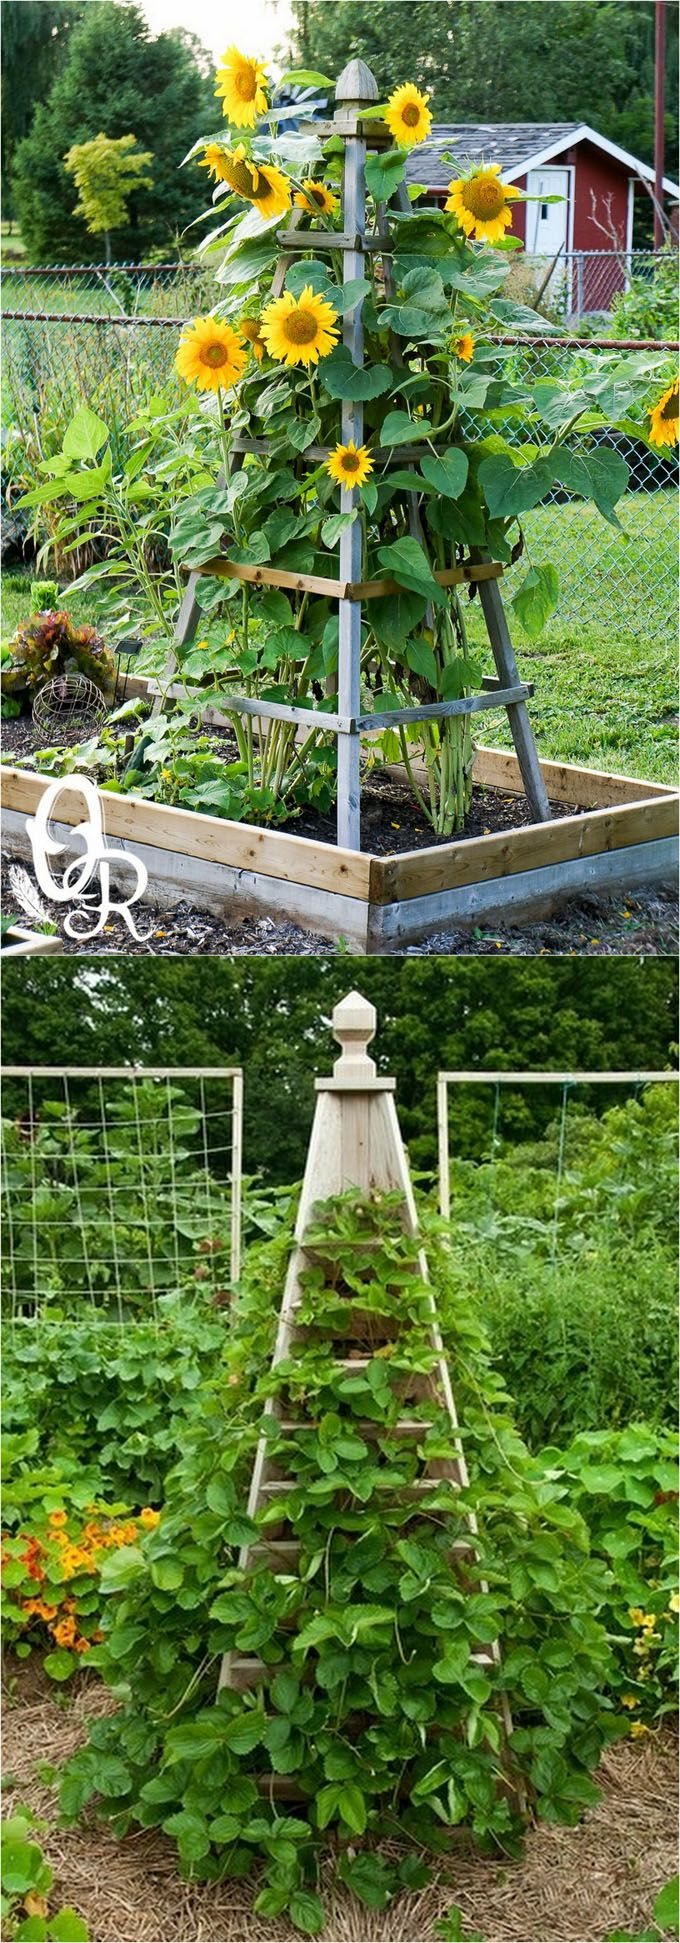 Country Vegetable Garden Ideas 4296 best gardens images on pinterest | vegetable garden, veggie